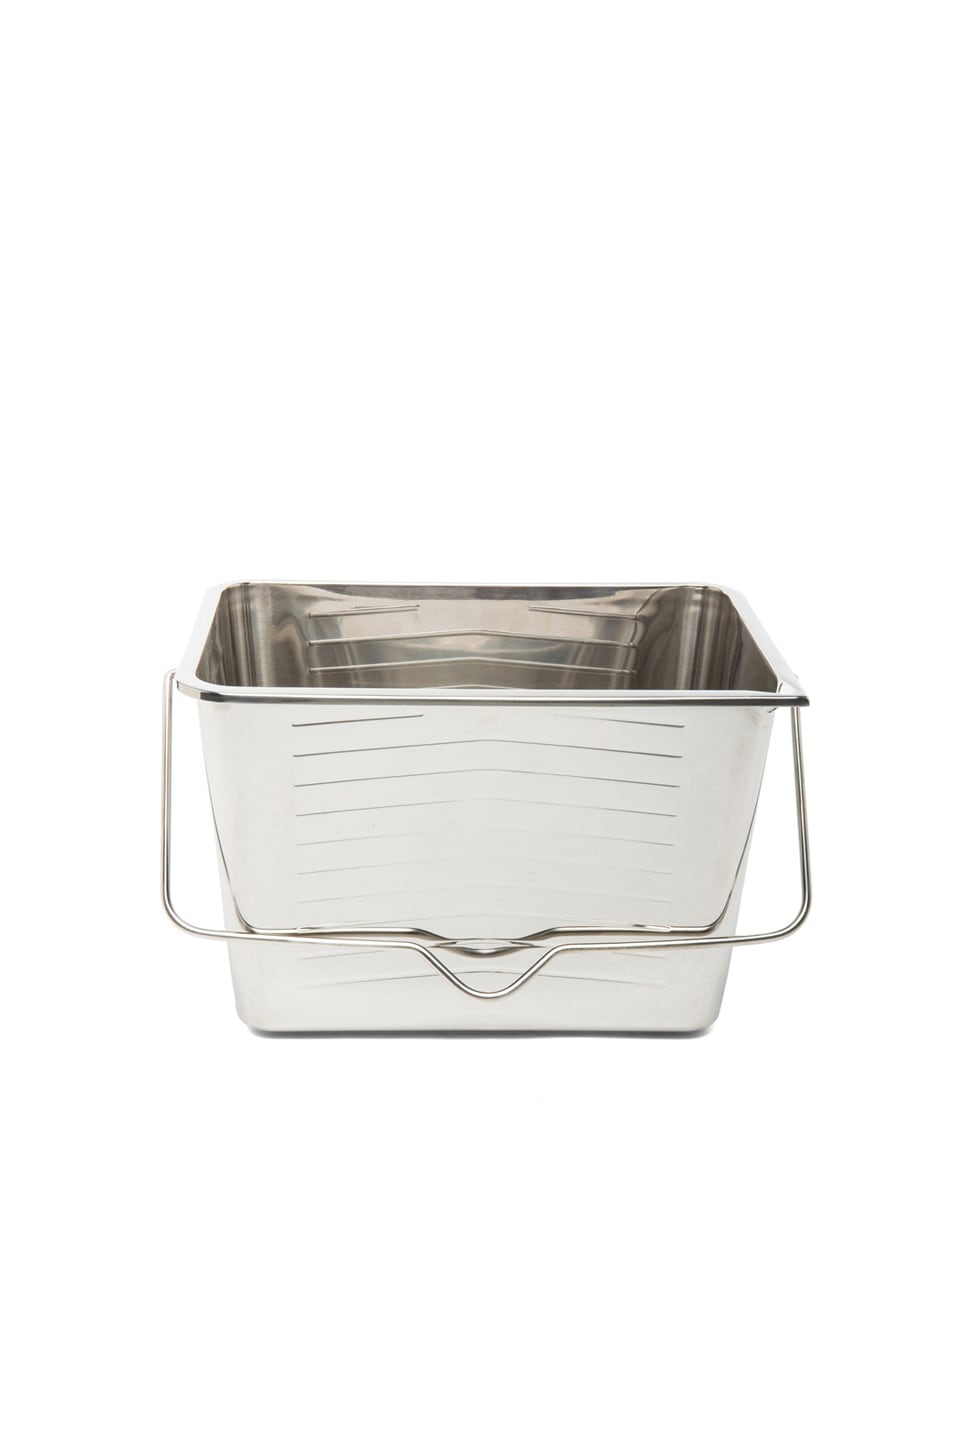 Image 1 of Maison Margiela Champagne Bucket in Silver